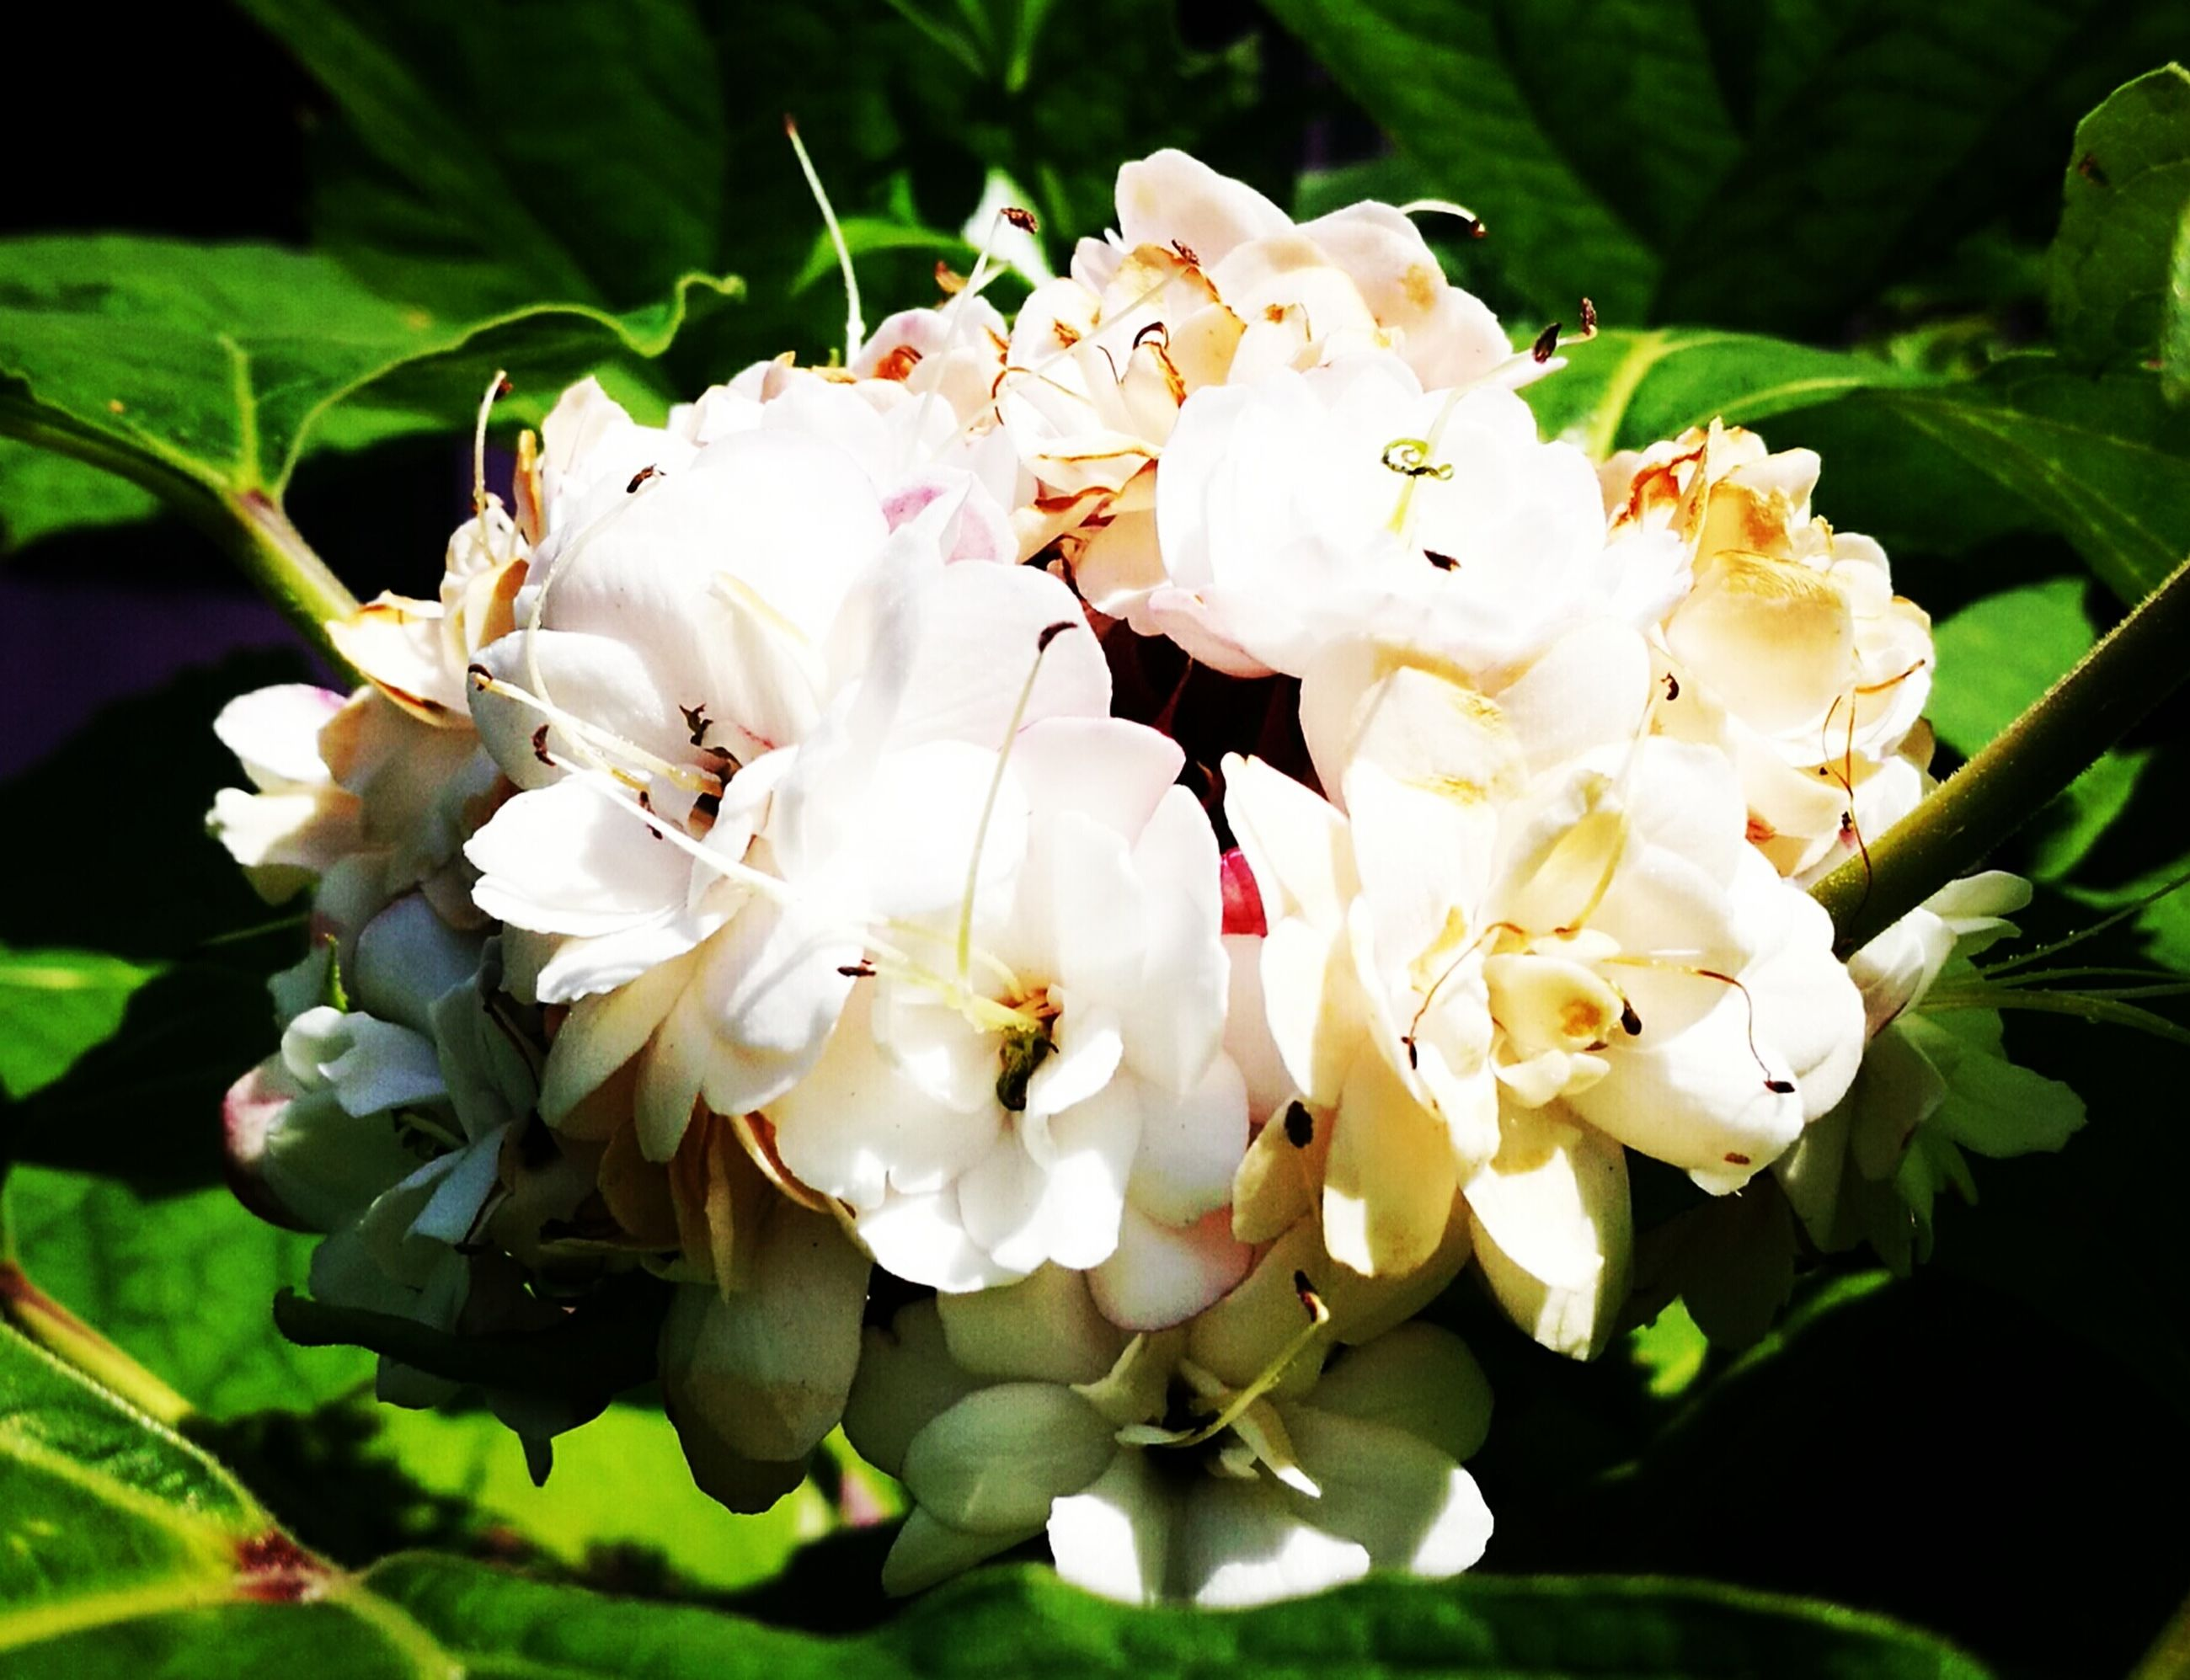 flower, nature, growth, beauty in nature, fragility, freshness, plant, petal, flower head, outdoors, close-up, insect, blossom, blooming, stamen, day, no people, leaf, animal themes, rhododendron